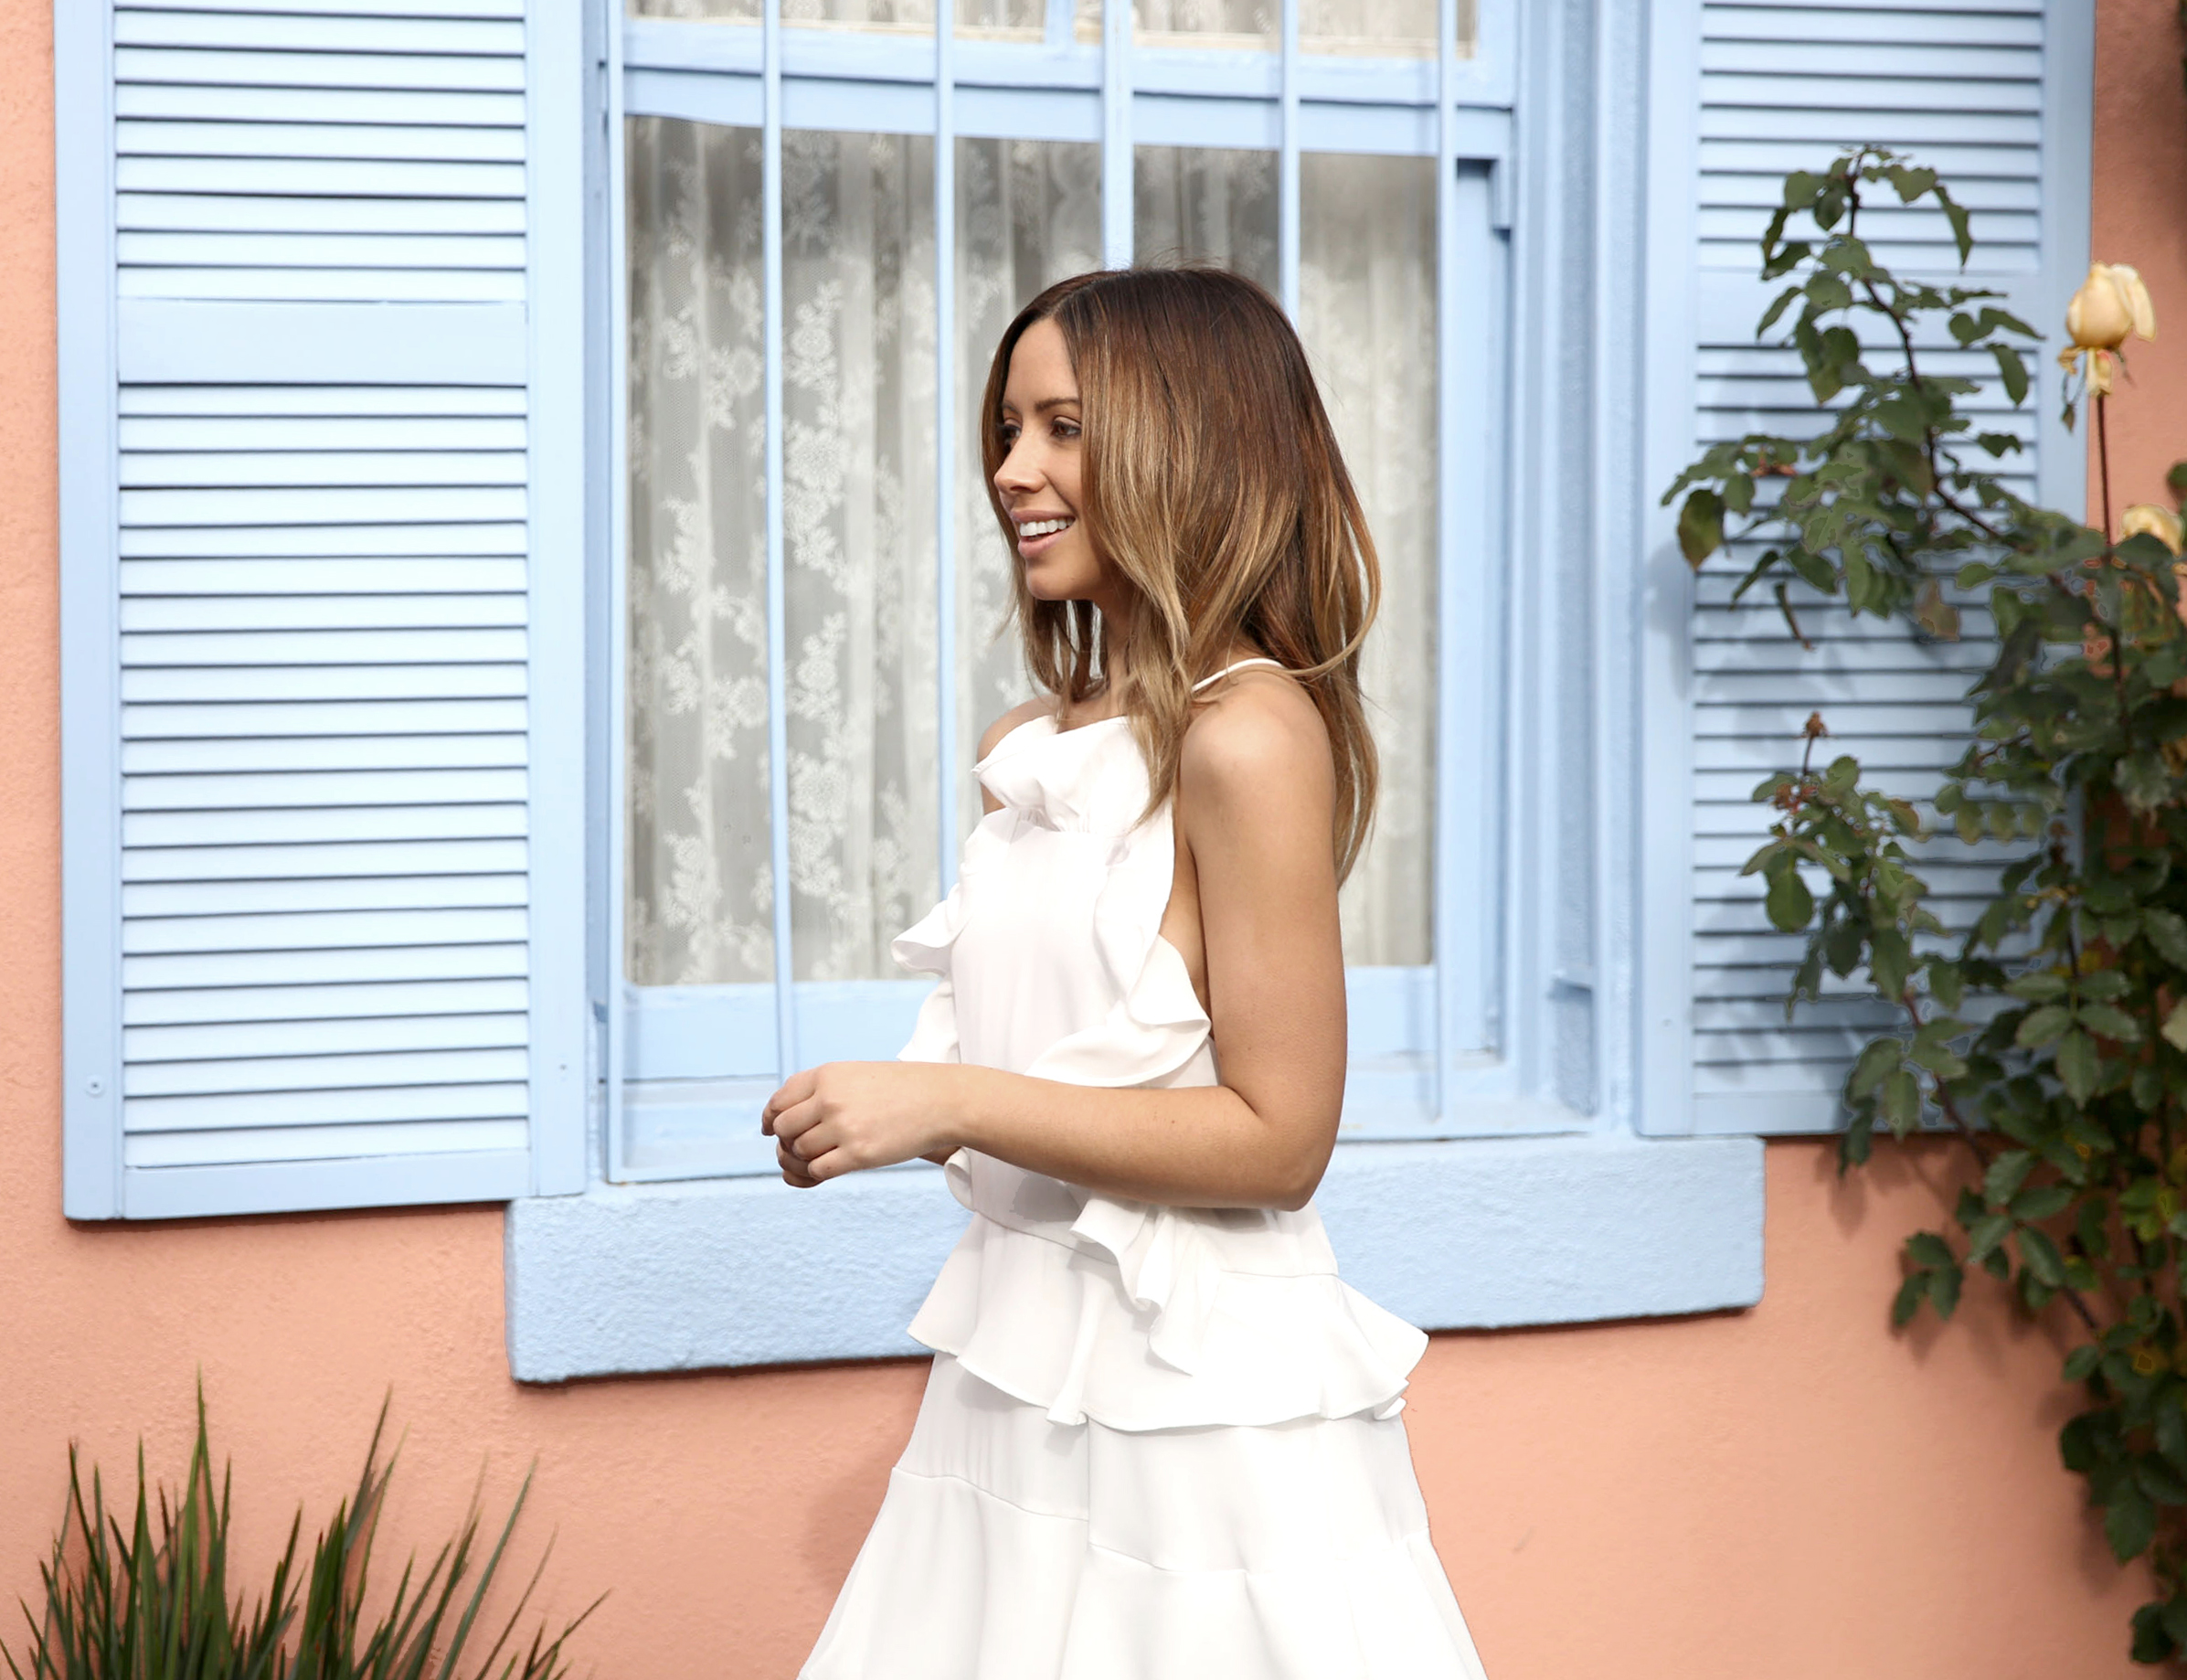 FriendInFashion_WhiteDress_StreetStyle_Vogue_6.jpg